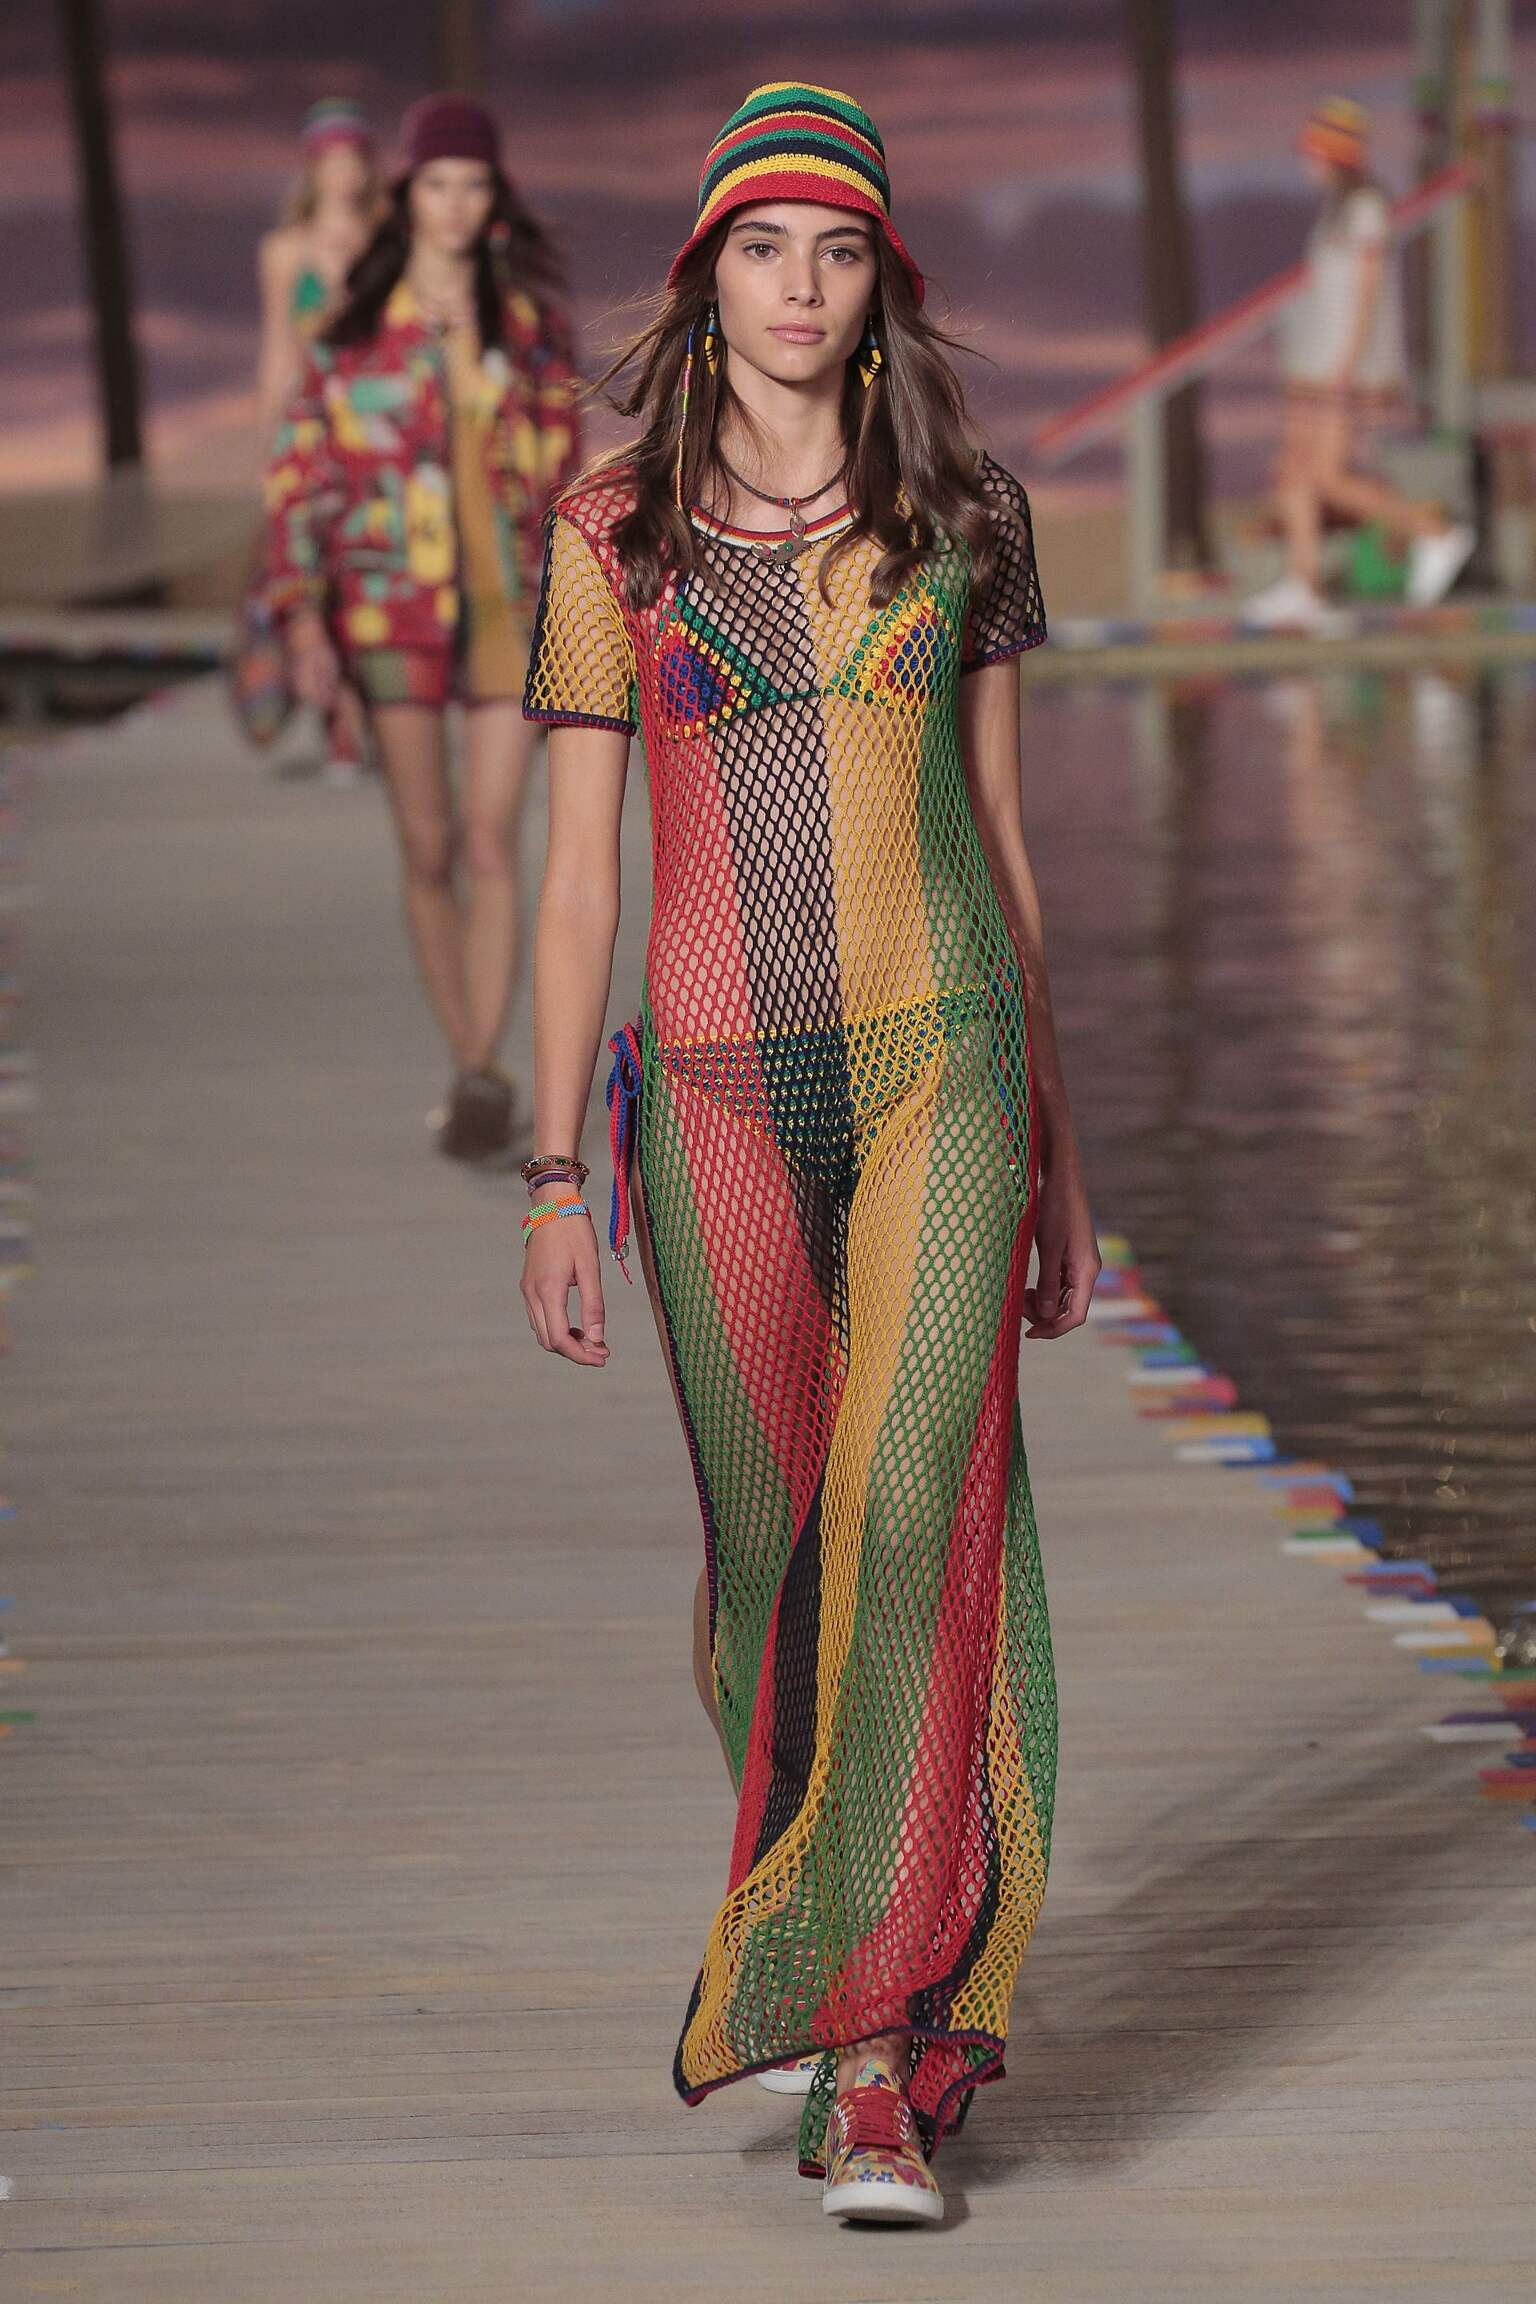 TOMMY HILFIGER SPRING SUMMER 2016 WOMEN'S COLLECTION